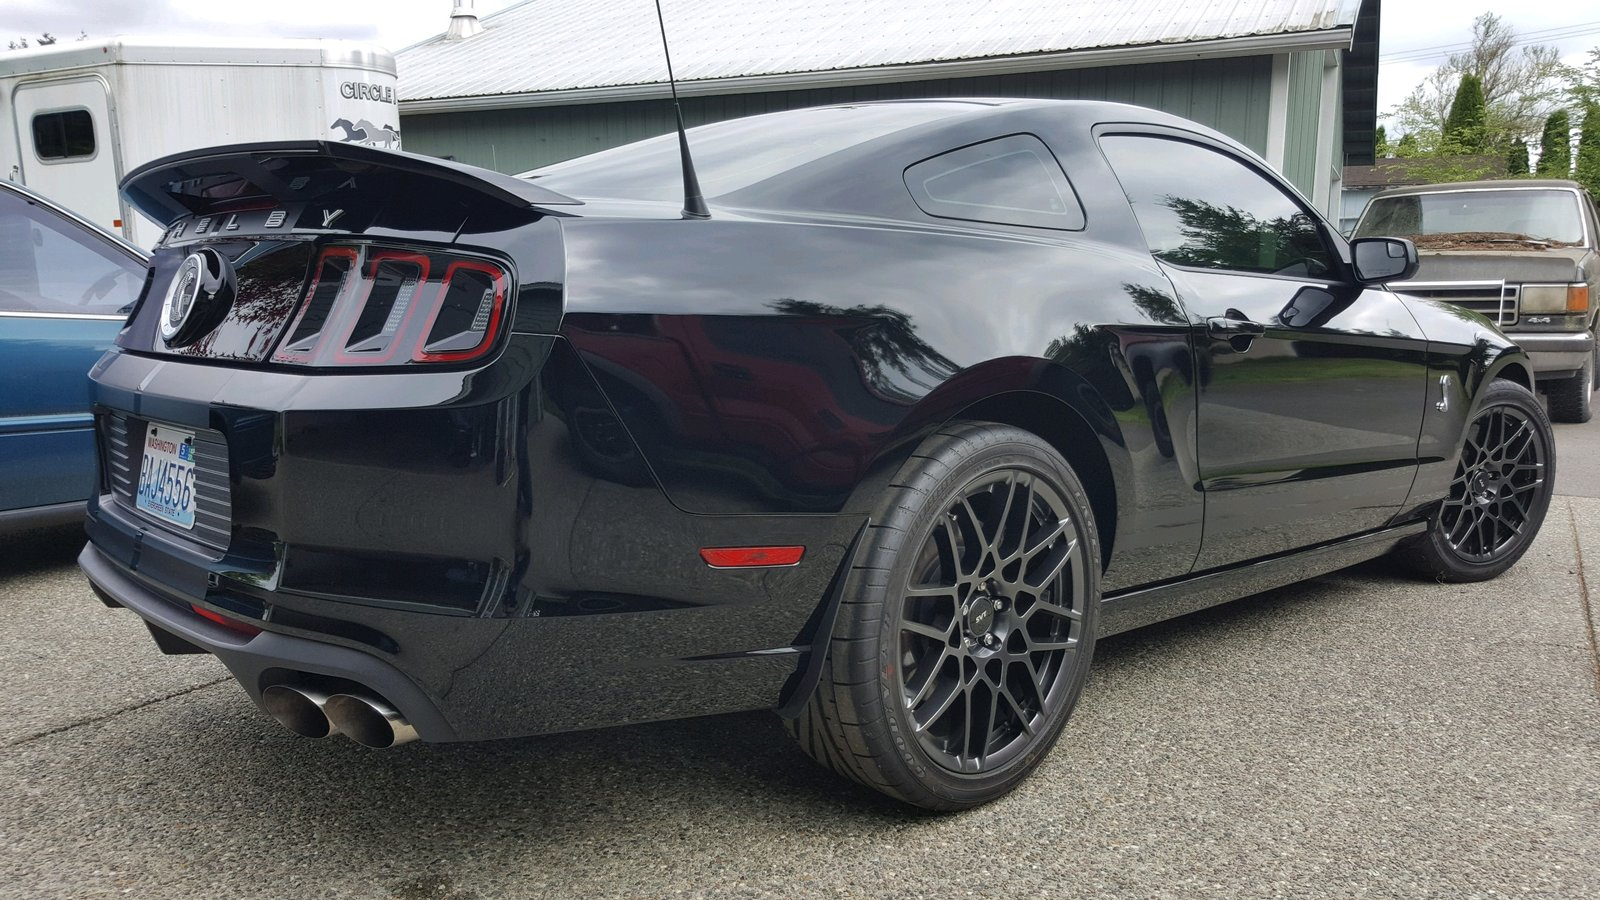 For Sale: 2014 Black Shelby GT500 1,025 Miles ...